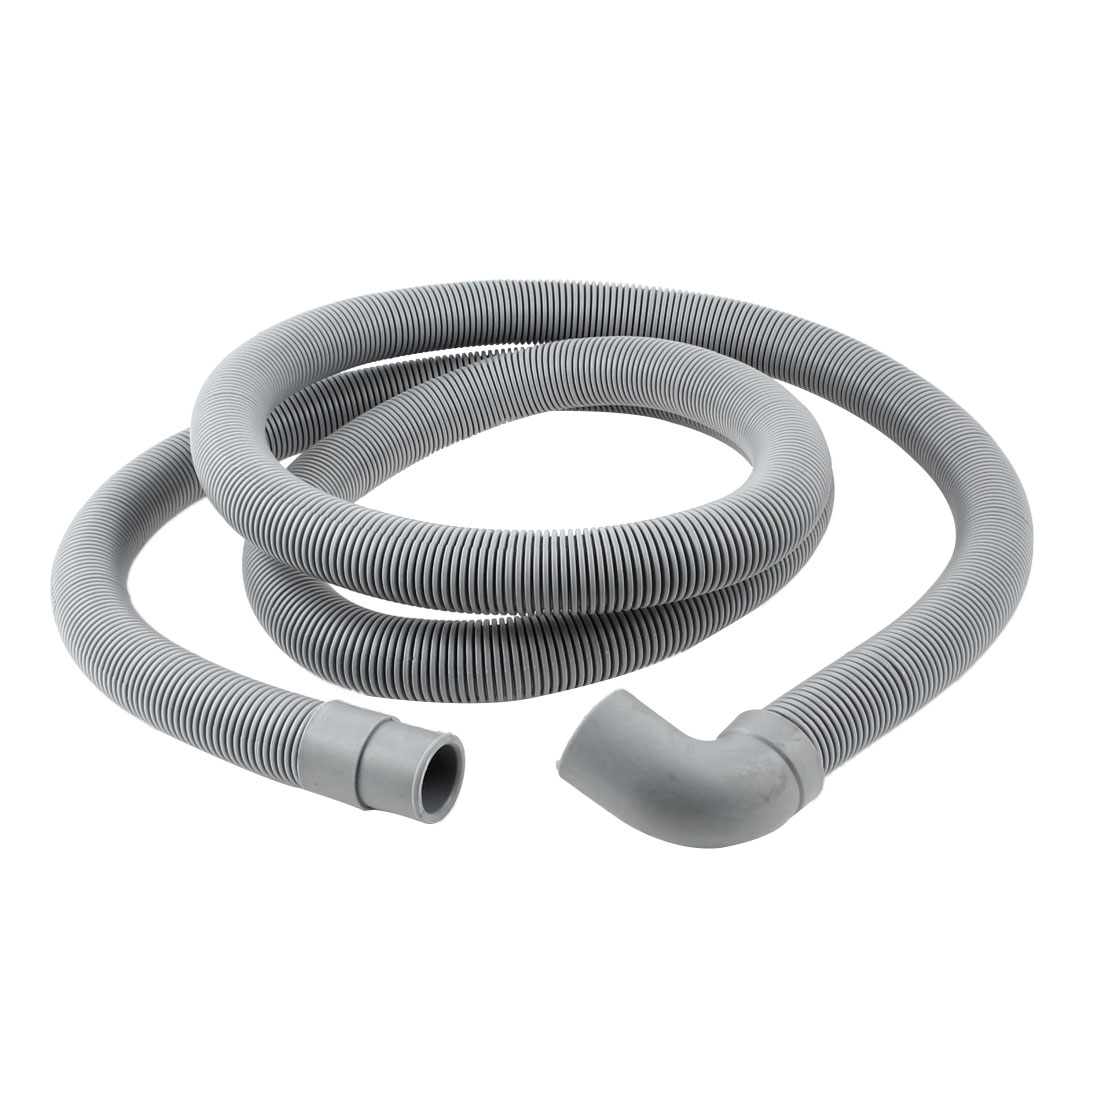 "78.7"" Long Plastic Gray Washing Machine Drain Pipe Washer Hose"